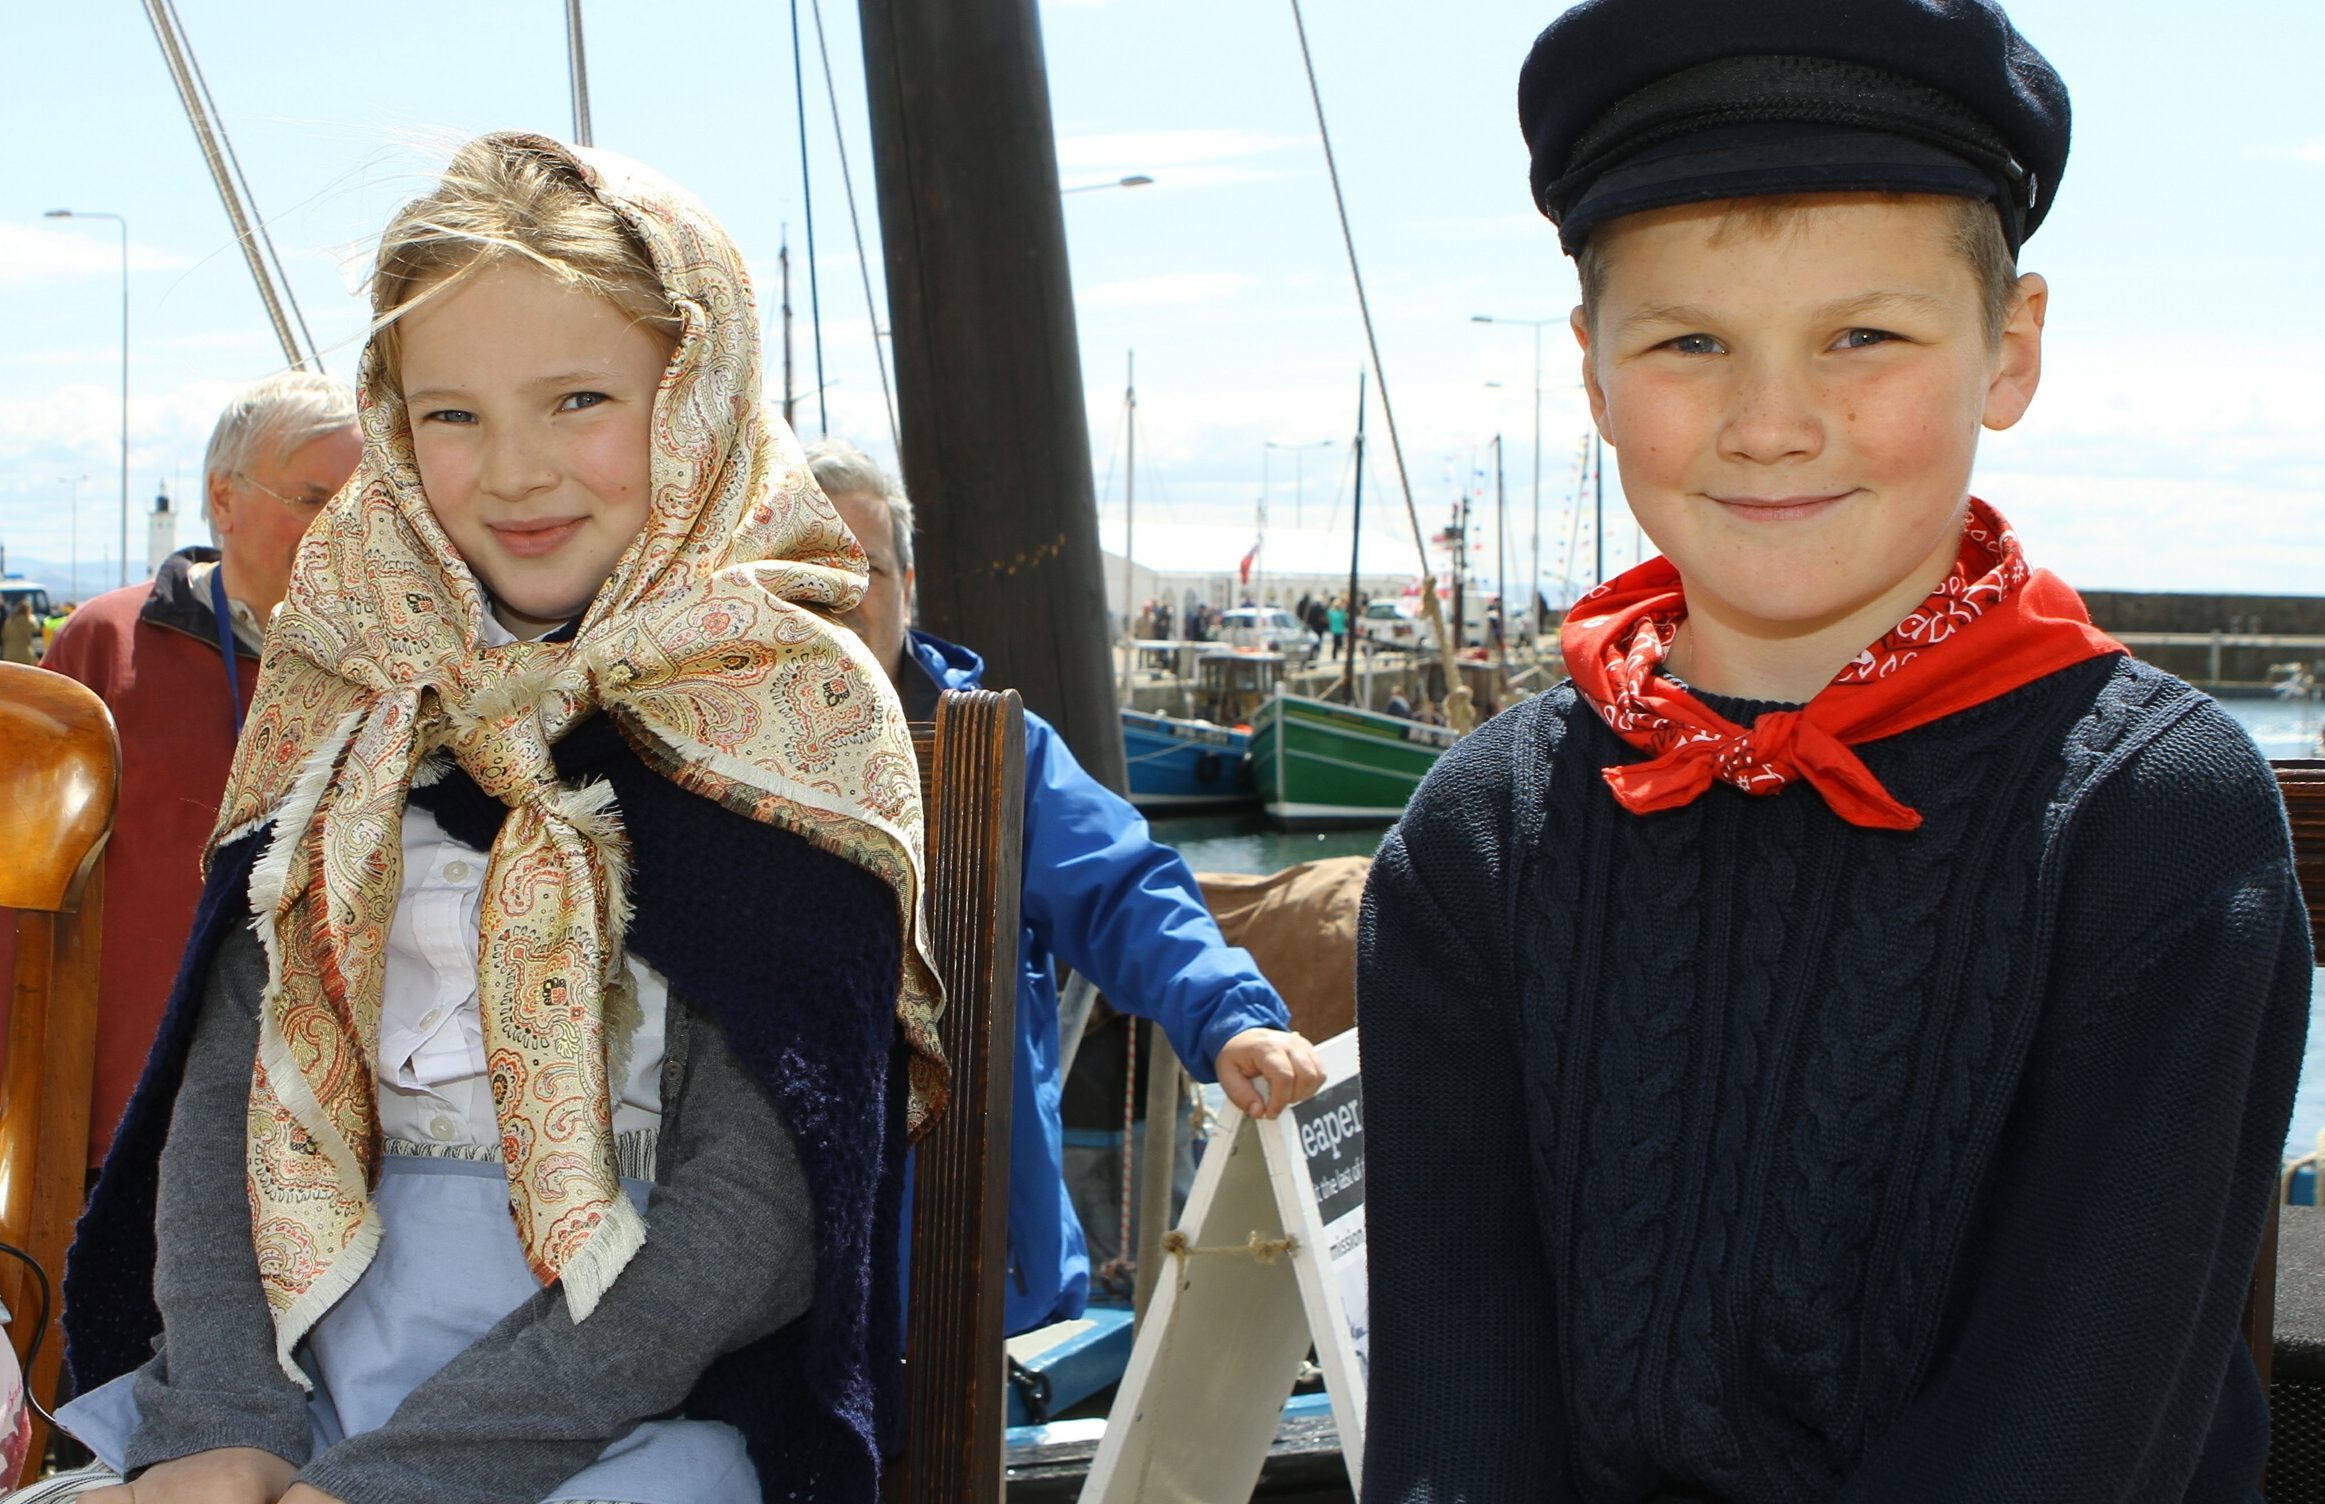 The 2015 Anstruther Harbour Festival Fisher Lass - Jenny Hodge and the Fisher Lad - Jamie Anderson.